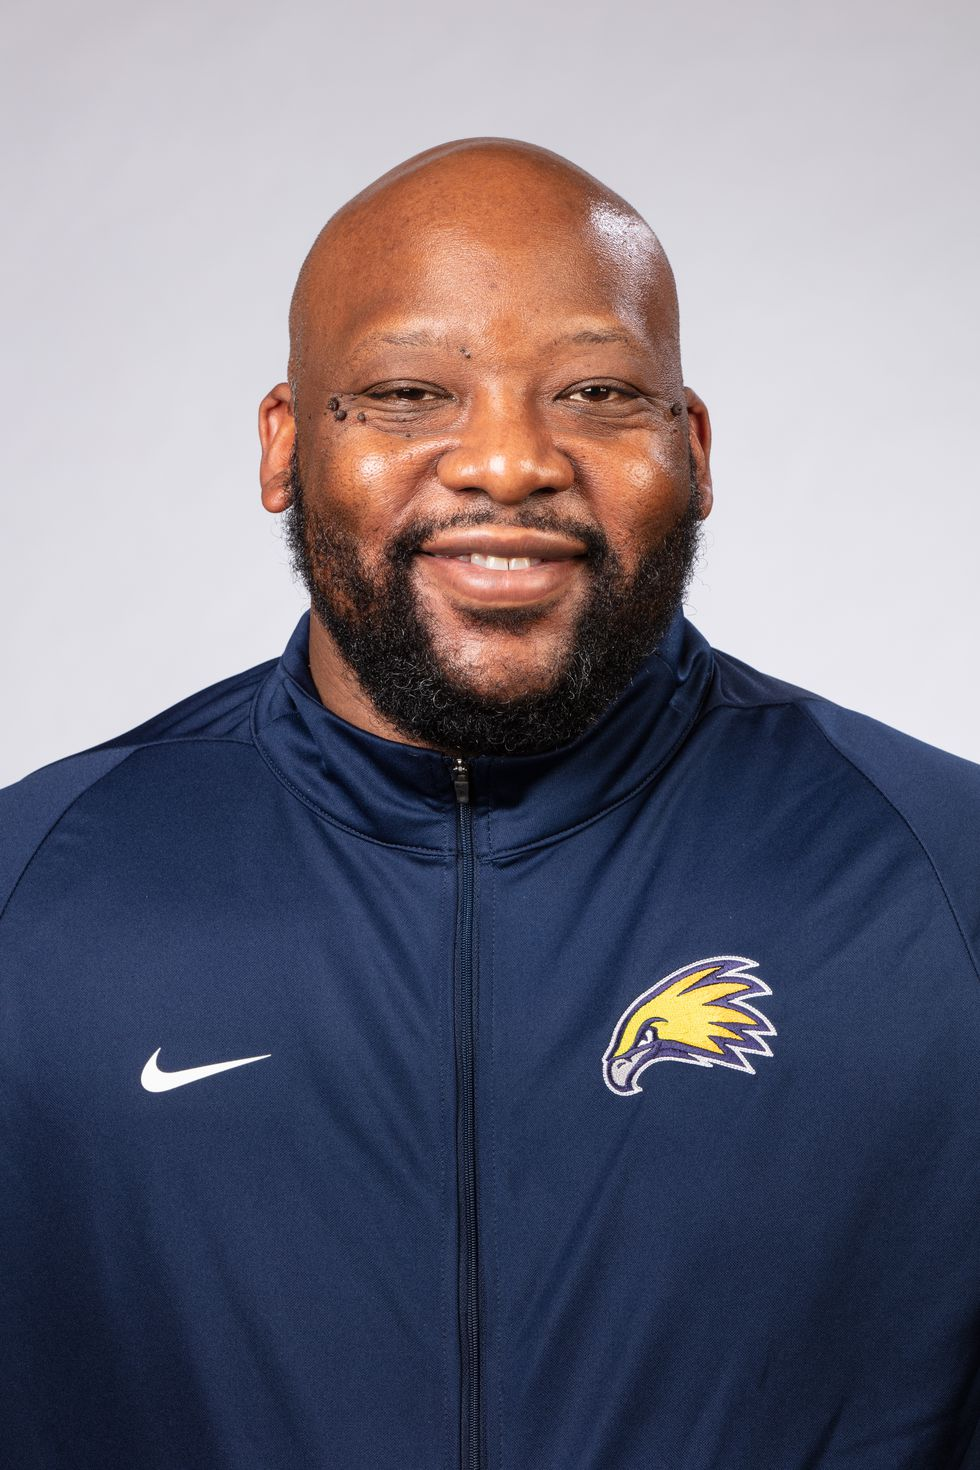 LCCC announces new head coach for Men's Basketball